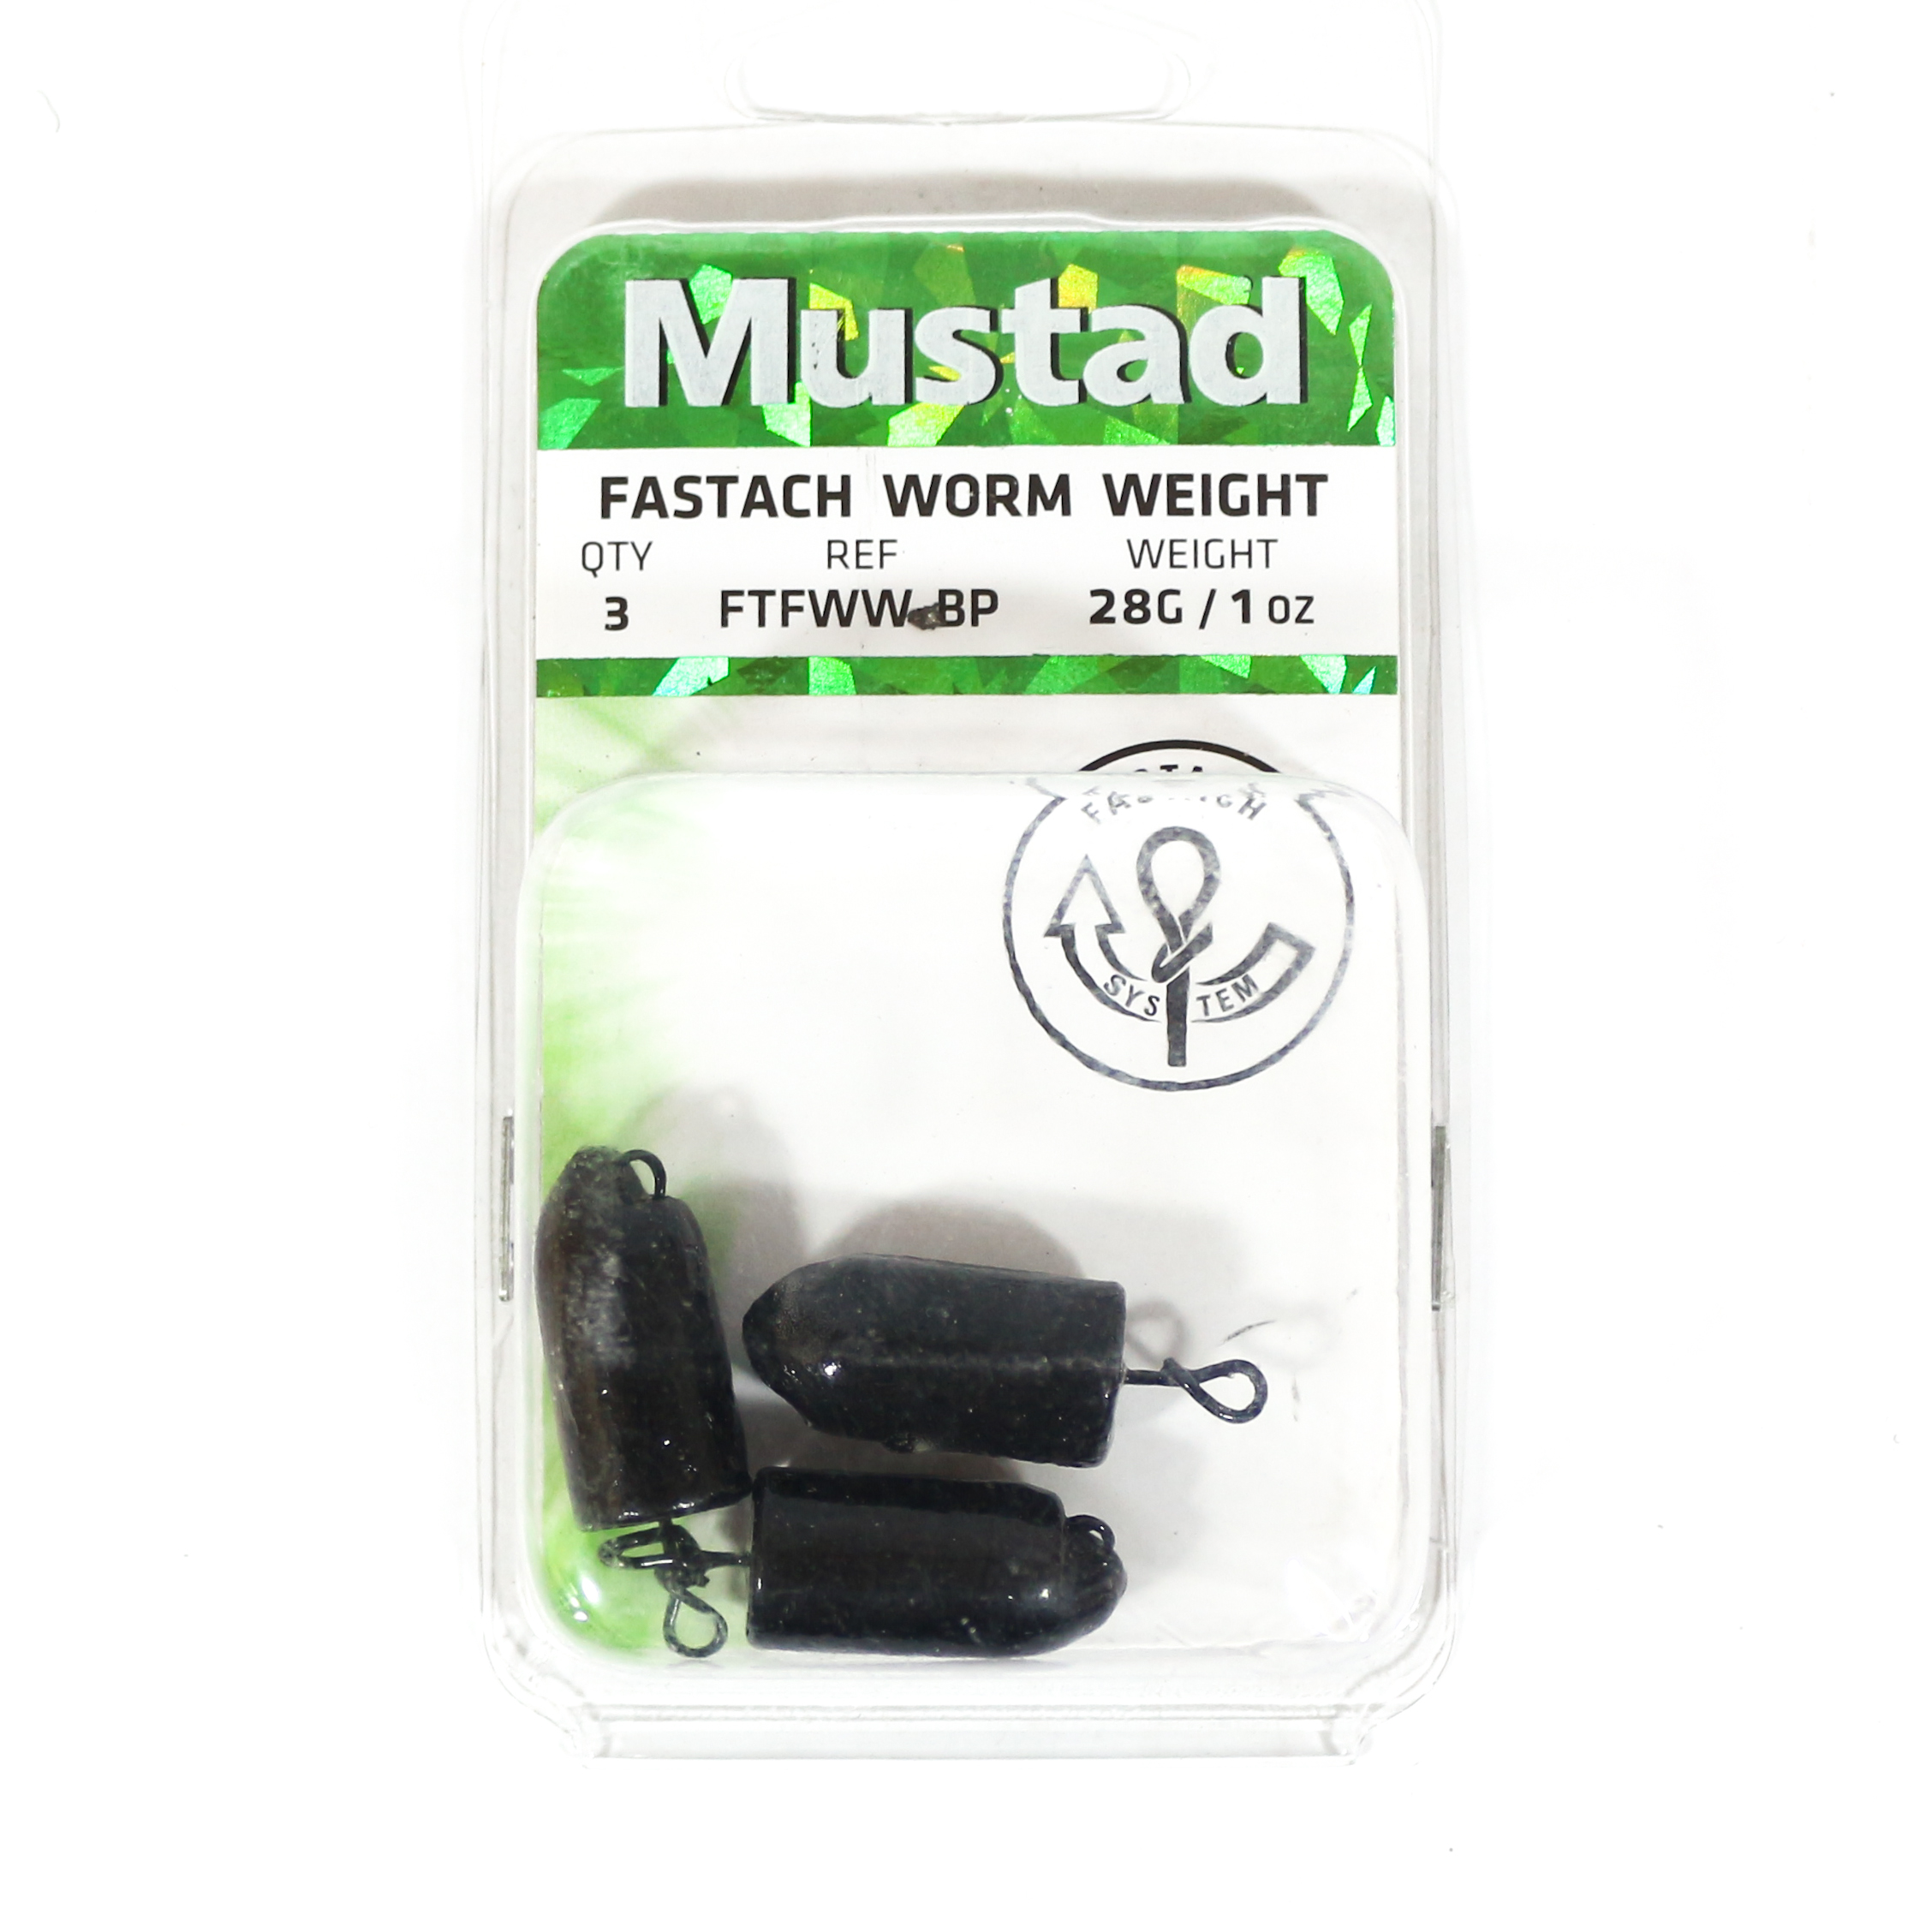 Mustad Worm Weight Fastach 1 Oz Black (1083)